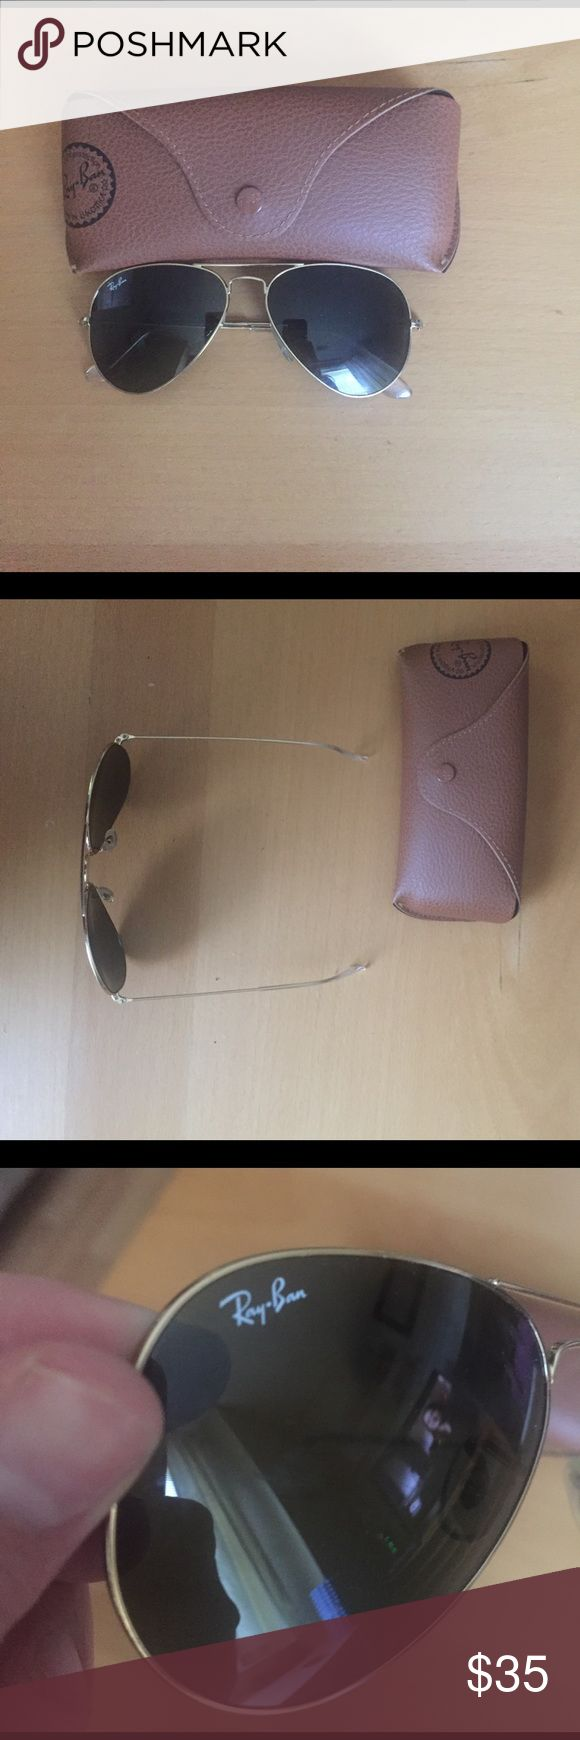 Ray ban aviators Ray ban aviators. Frames fit small. Worn often but great condition Ray-Ban Accessories Glasses